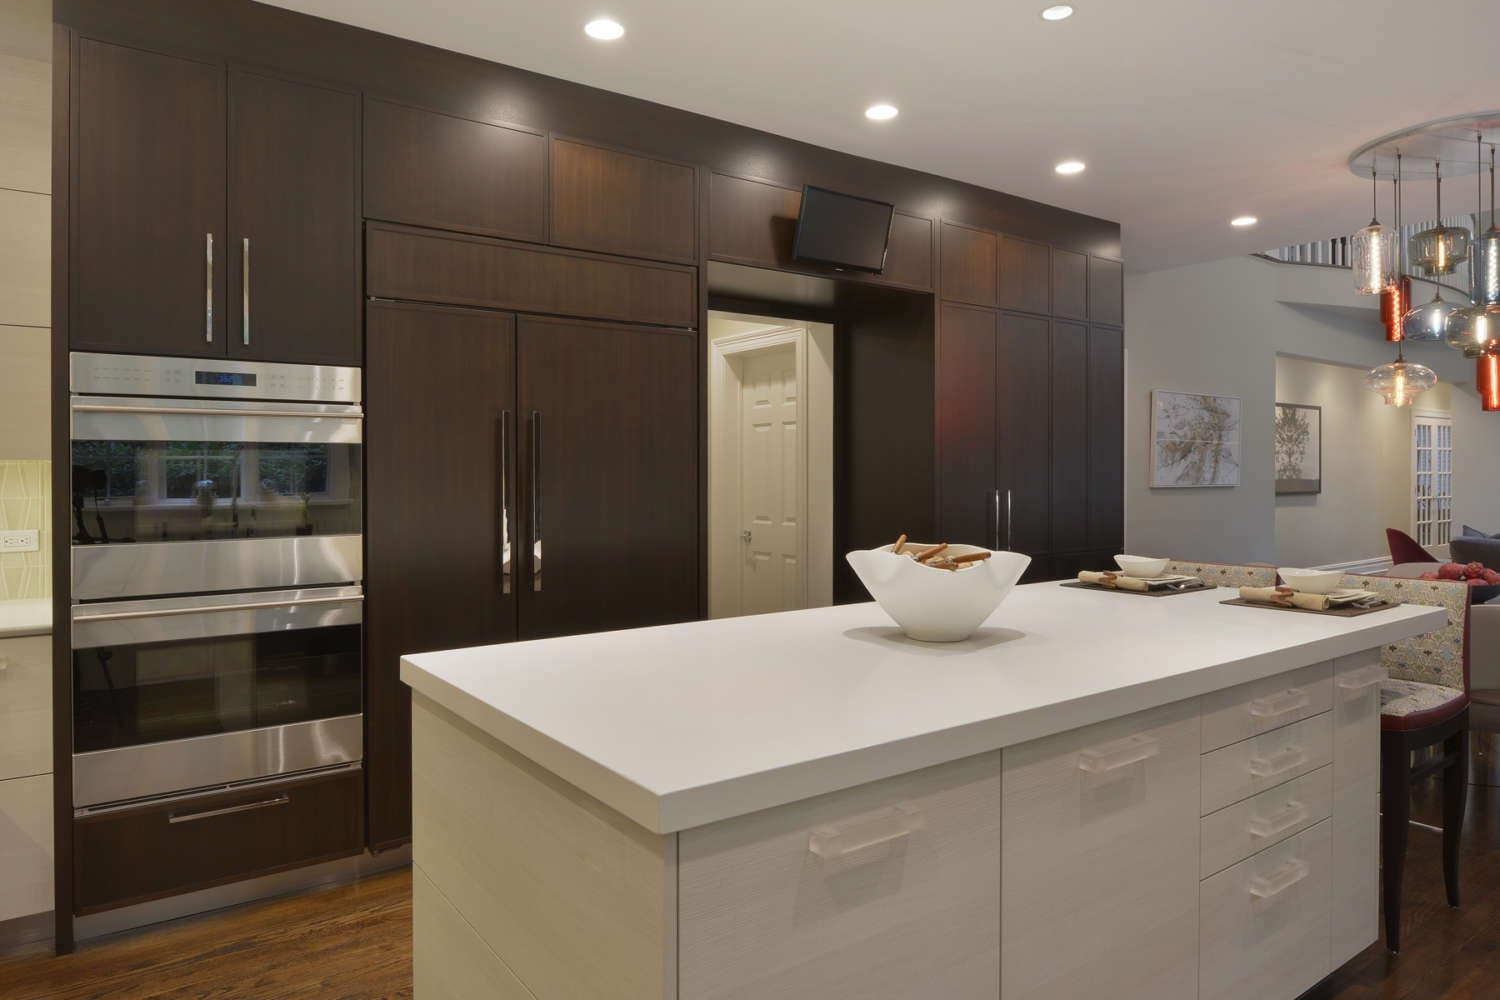 U-shaped kitchen features a mix of flat panel white textured laminate and shaker style walnut fully custom cabinets by Artcraft. The kitchen has white quartz countertops throughout, oak flooring, and a mix of chrome and red accents. Design by RitaLuisa Garces of Bilotta Kitchens.